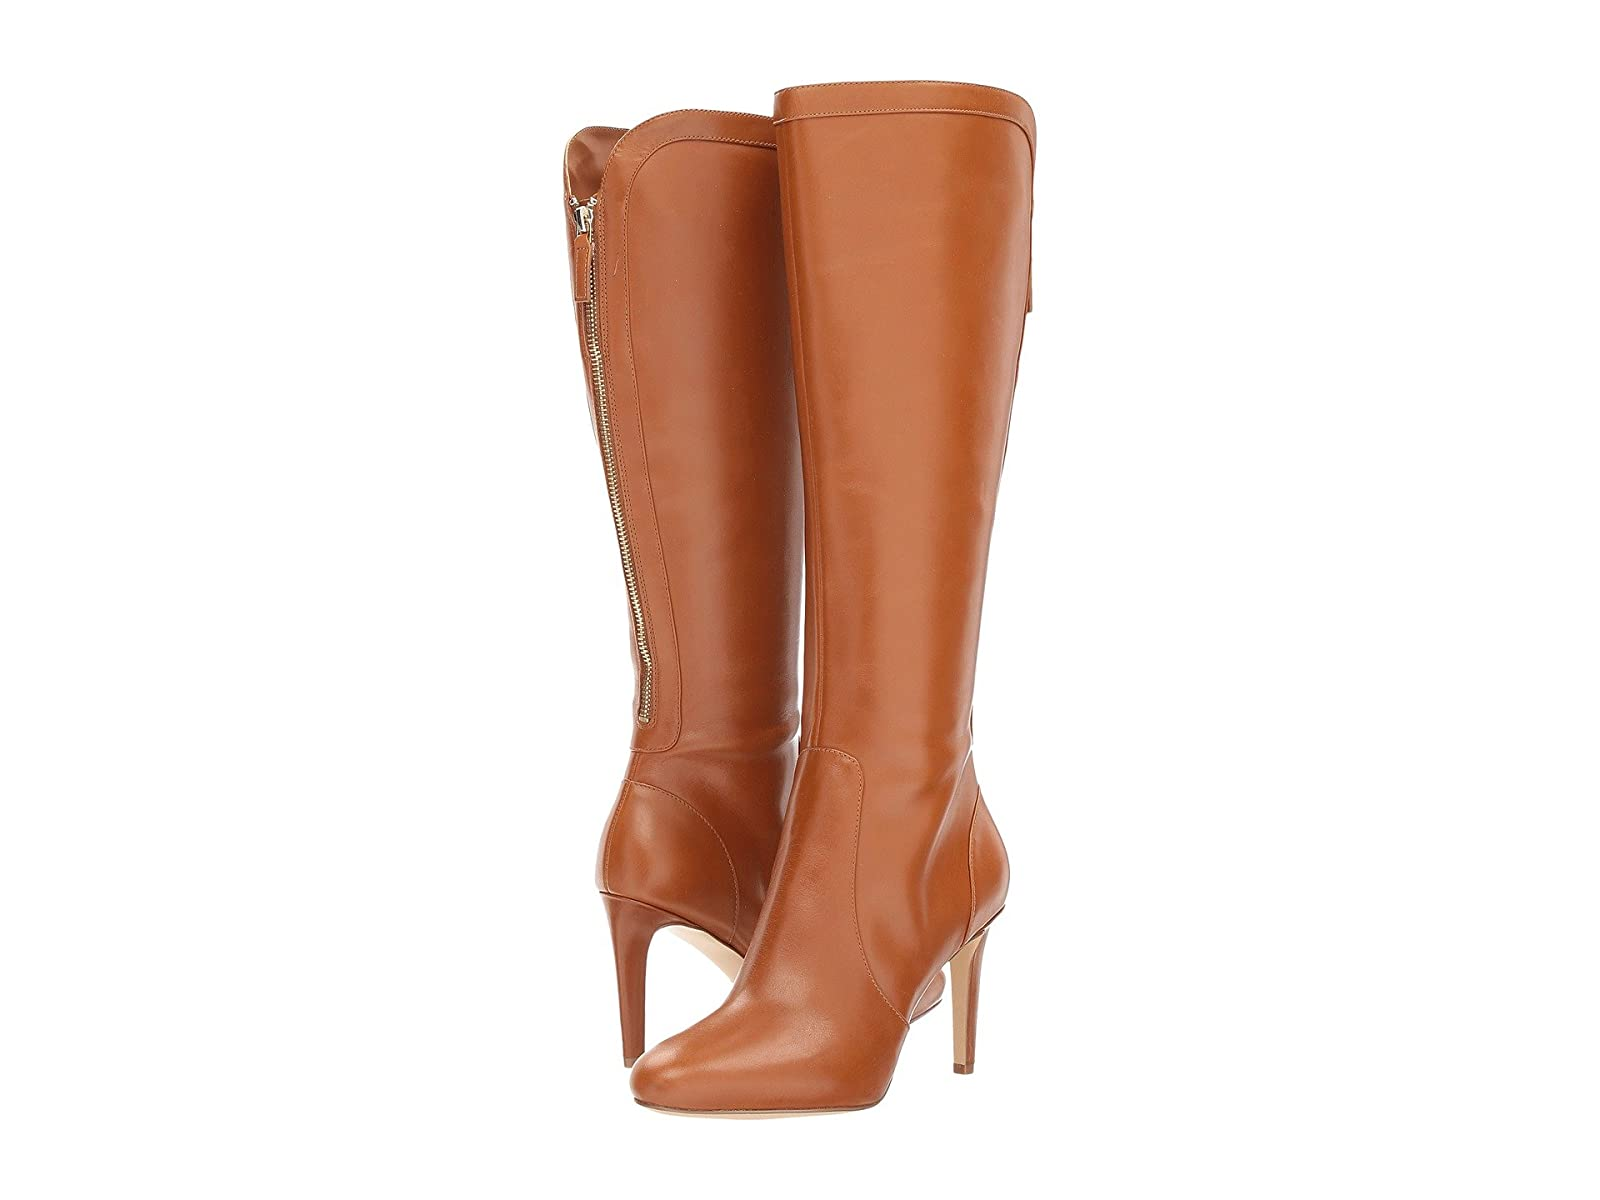 Nine West HoldtightCheap and distinctive eye-catching shoes